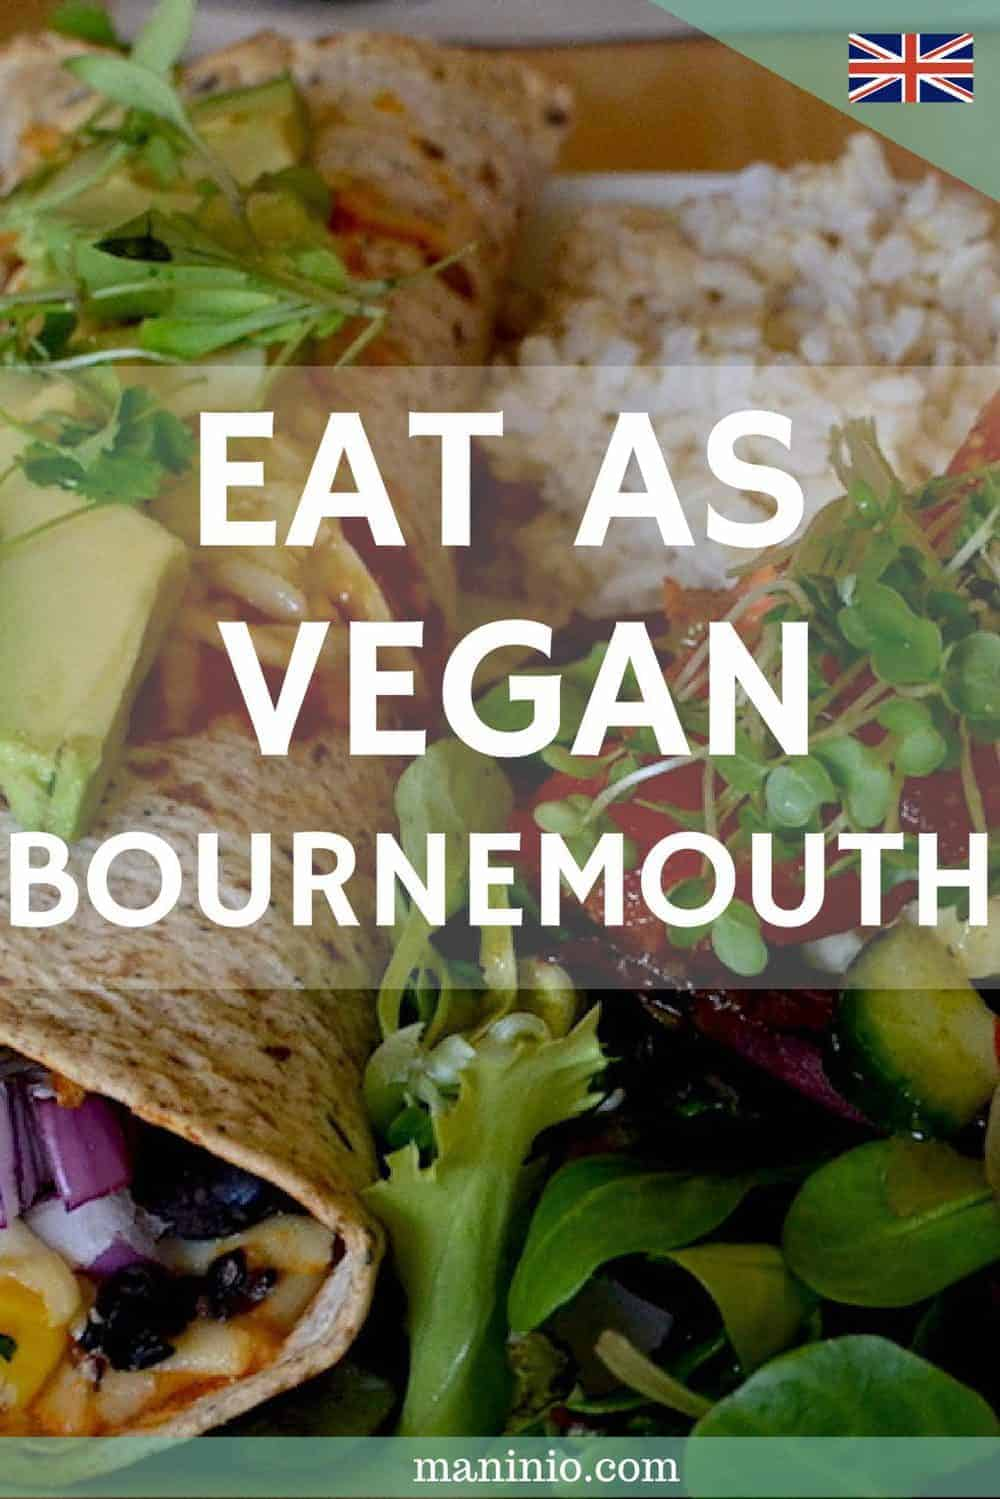 Eat as Vegan in Bournemouth - Top 5 awesome restaurants.maninio.com #veganbournemouth #veganengland